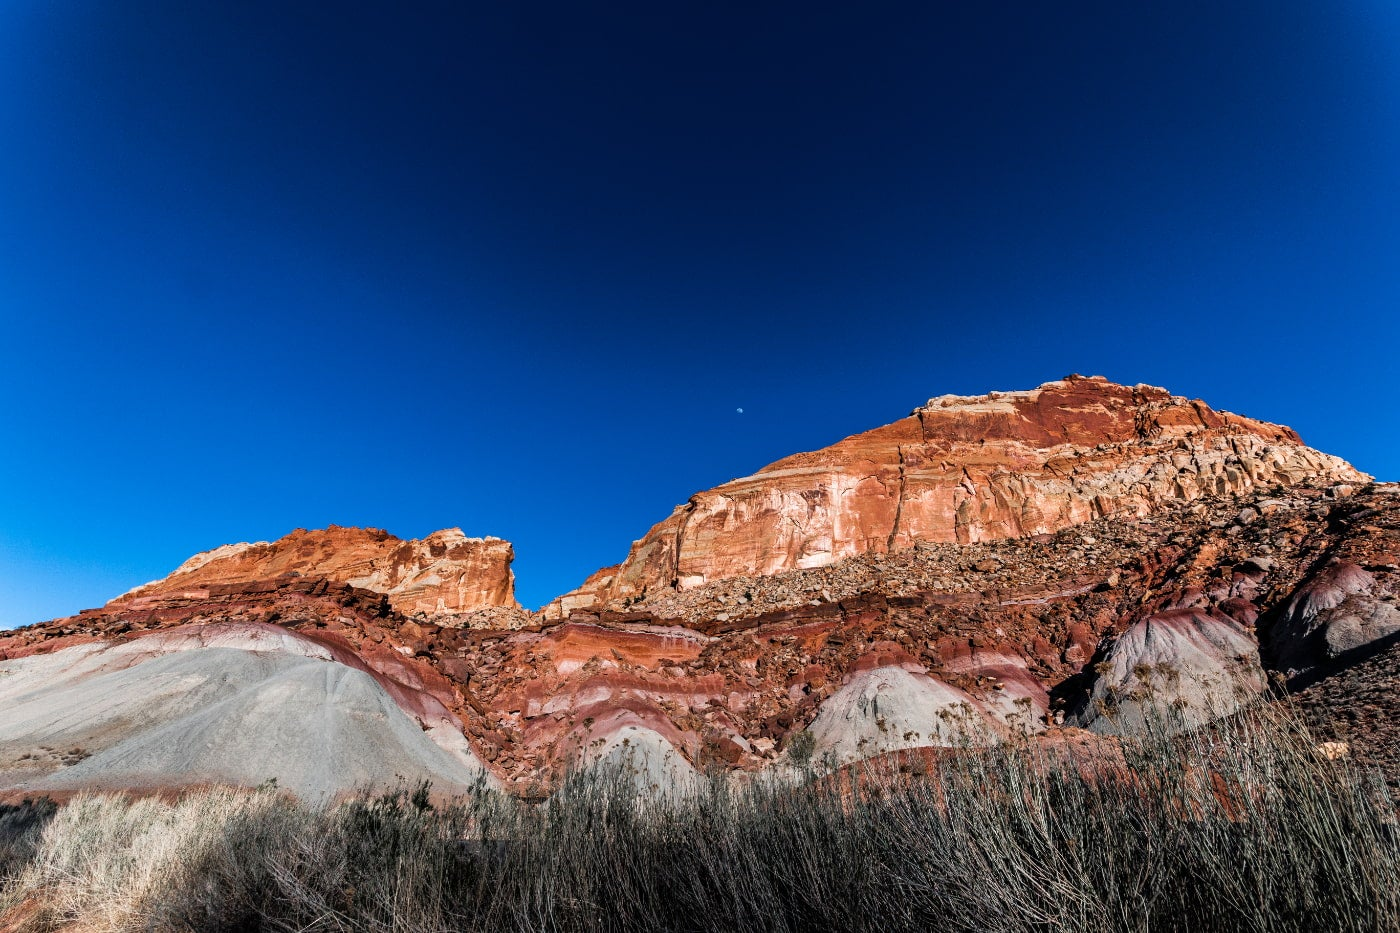 A dark blue sky with a small moon above a large mountain of red striated rock and dead brush beneath it.